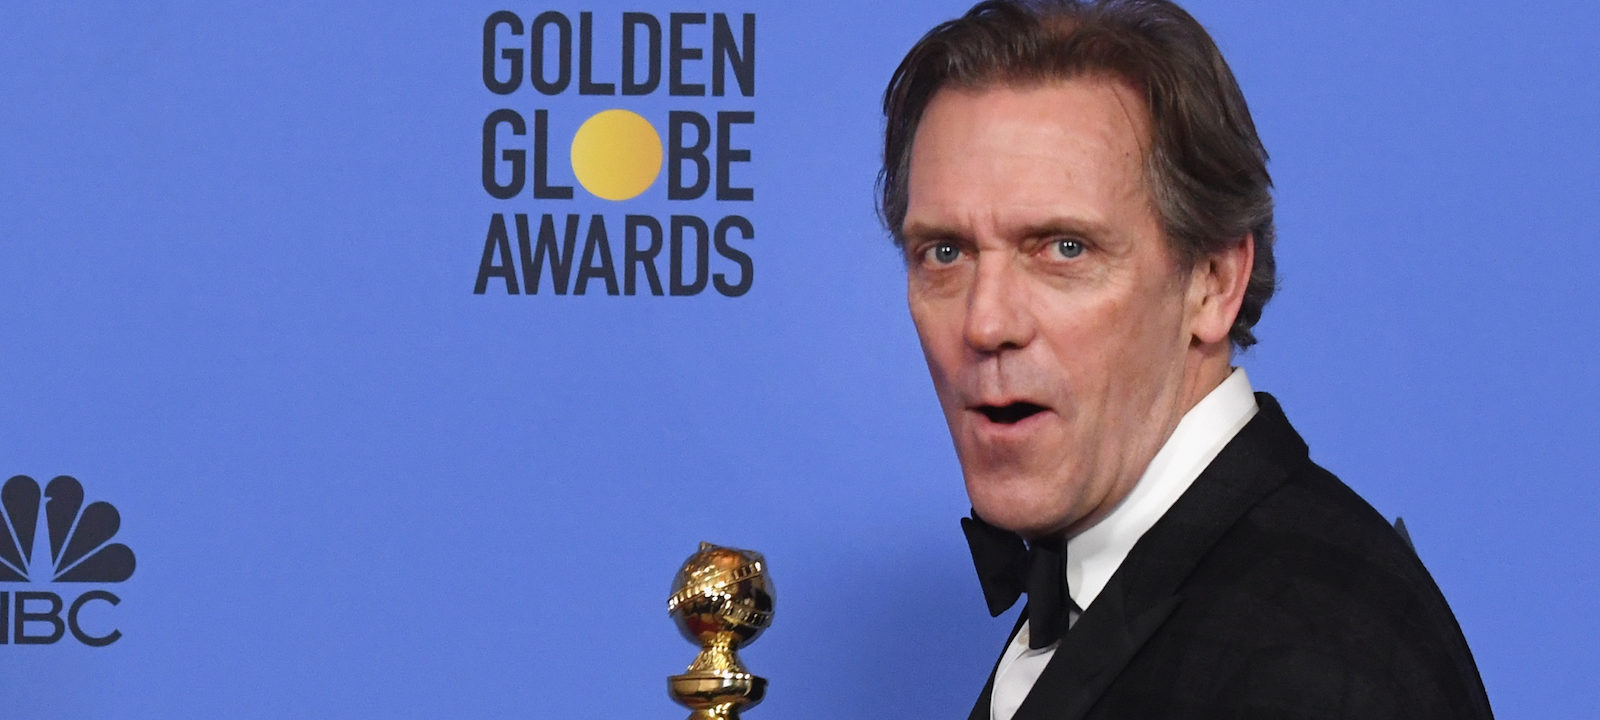 Actor Hugh Laurie, winner of Best Supporting Actor in a Series, Miniseries or Television Film for 'The Night Manager,' poses in the press room during the 74th Annual Golden Globe Awards at The Beverly Hilton Hotel on January 8, 2017 in Beverly Hills, California.